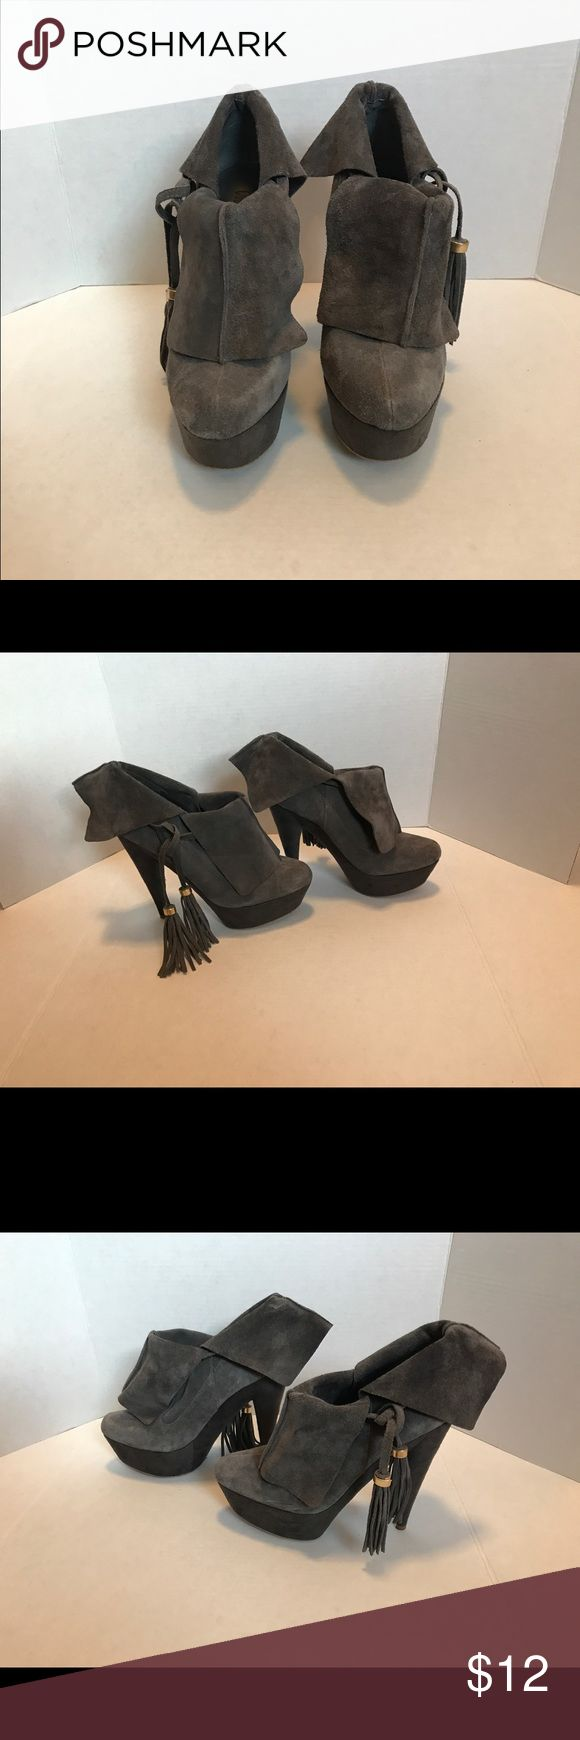 Colin Stuart Platform Heels with Tassels-Size 11 Colin Stuart Platform Heels with Tassels-Size 11. Please note any imperfections with the suede found in the pictures posted. These shoes are pre-owned. Colin Stuart Shoes Platforms